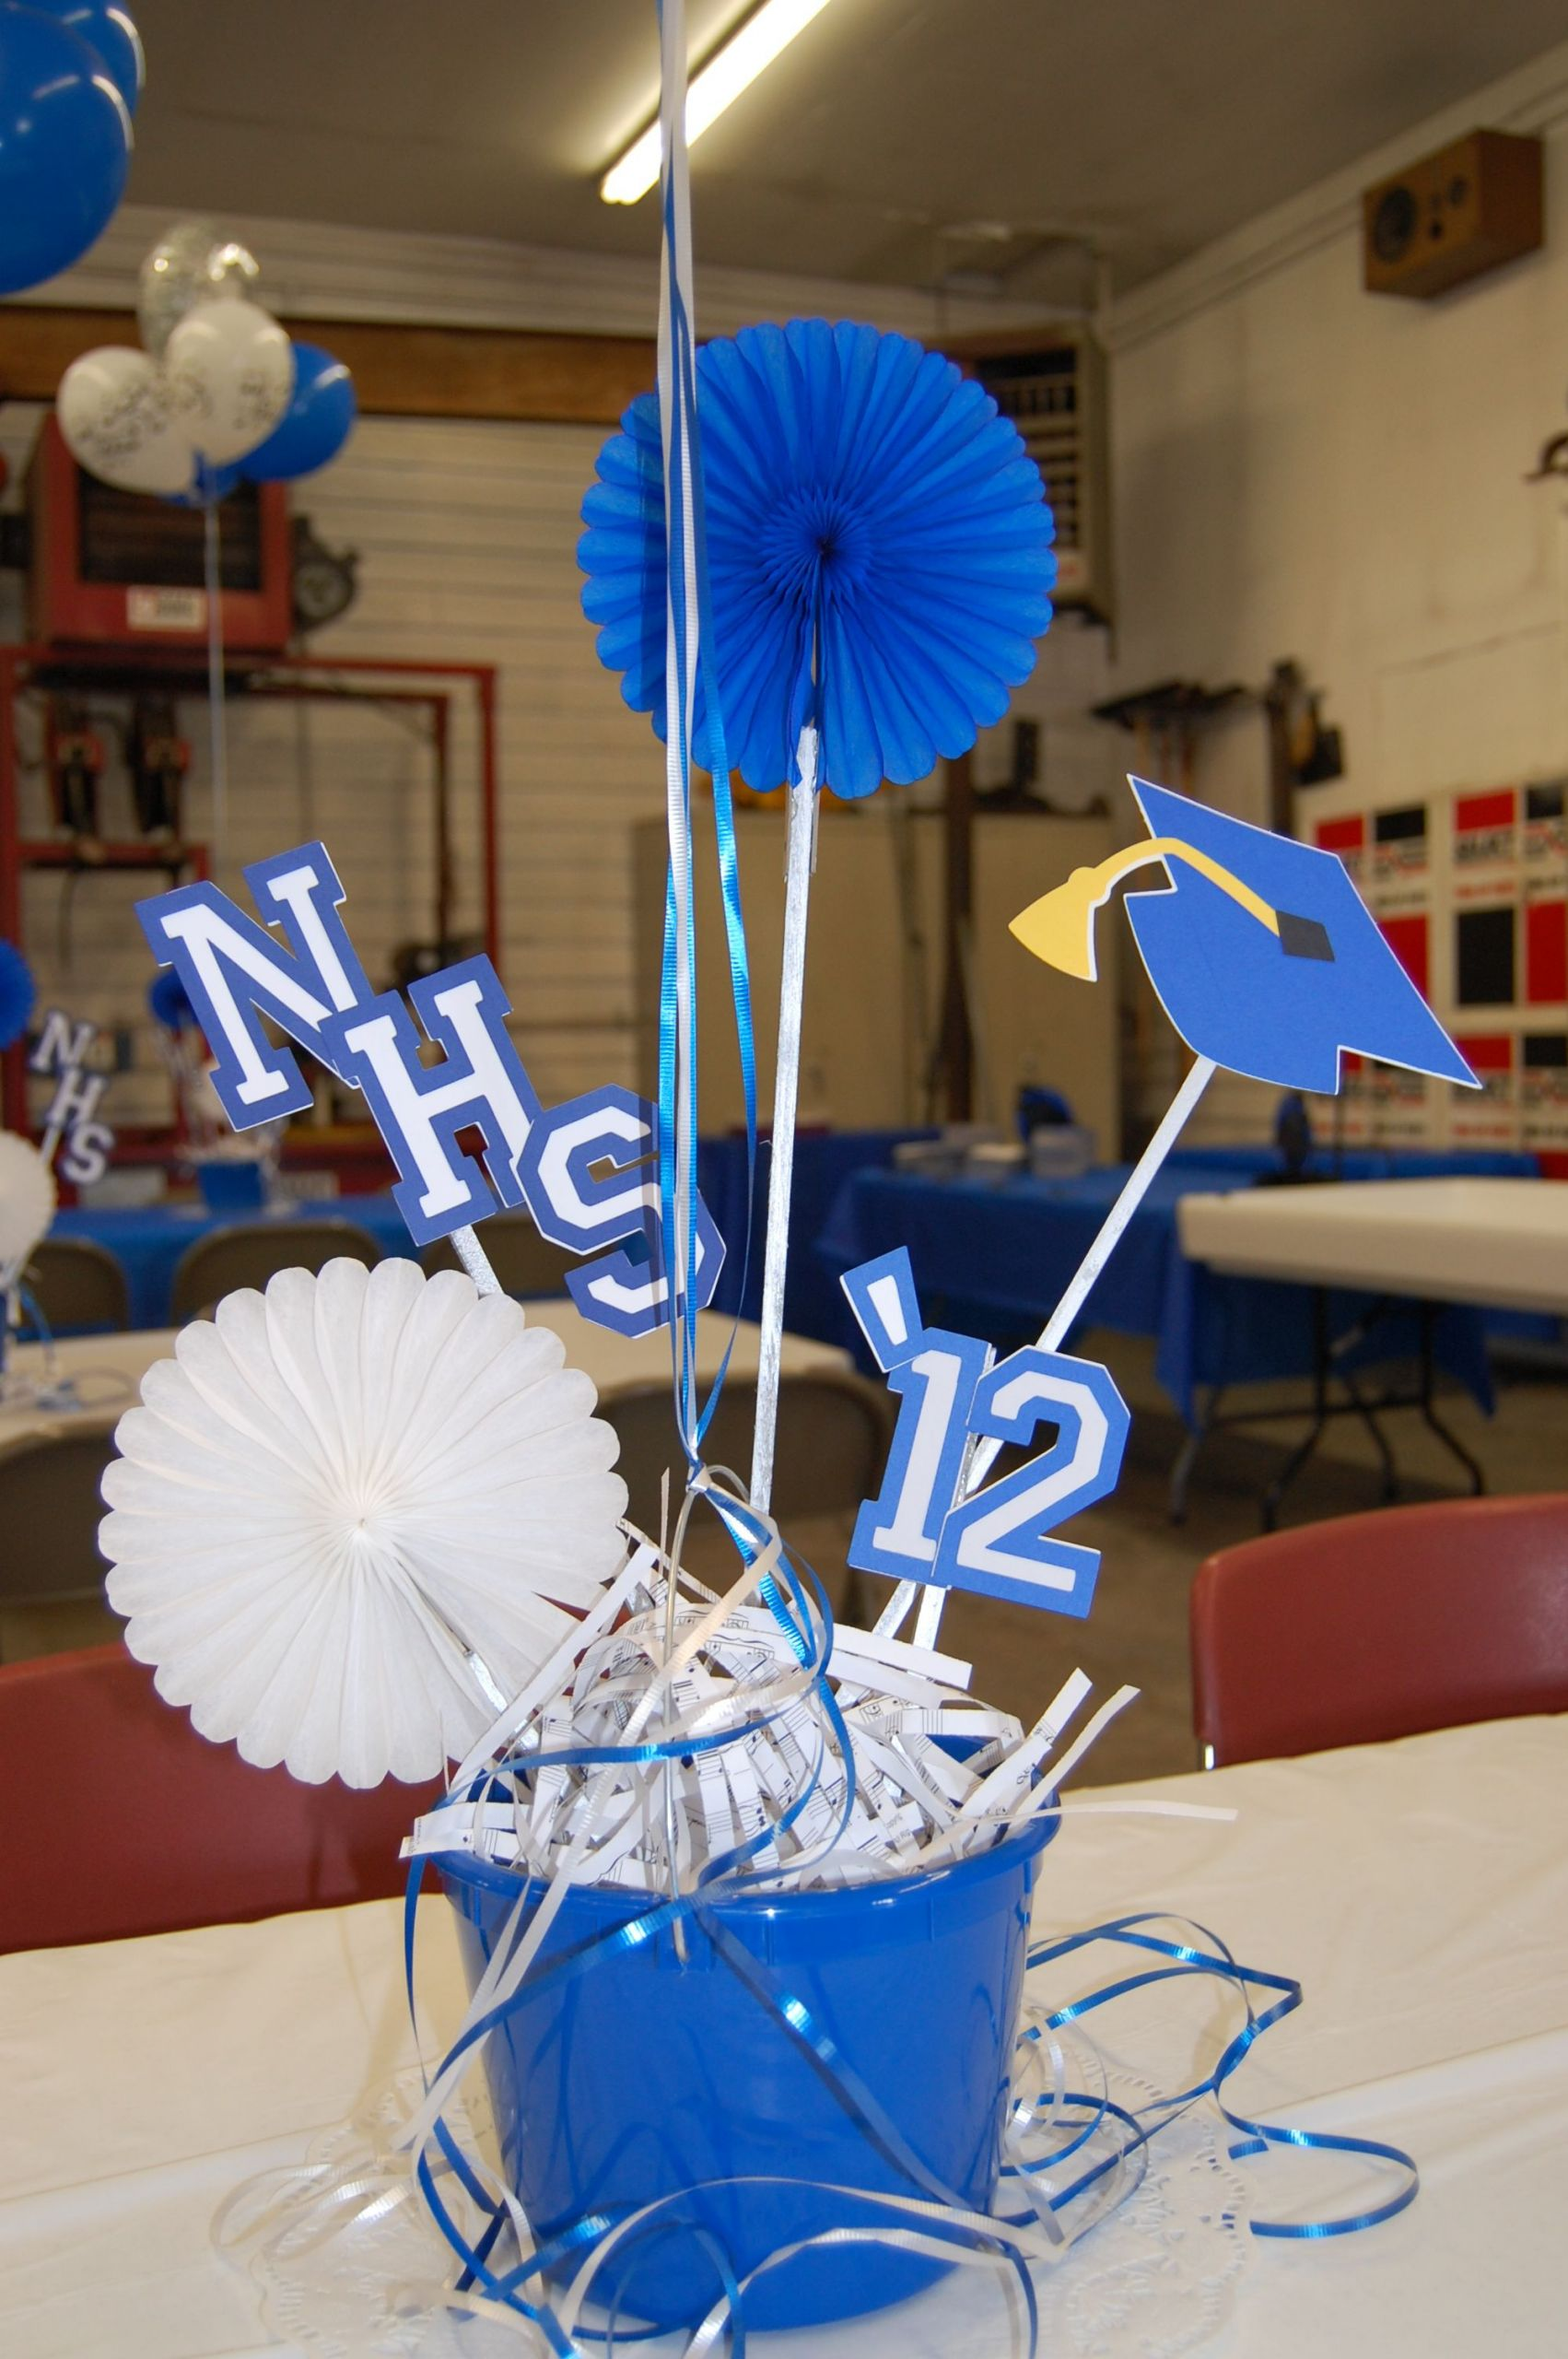 Table Decorations For Graduation Party Ideas  Easy centerpieces Grad time will be here soon